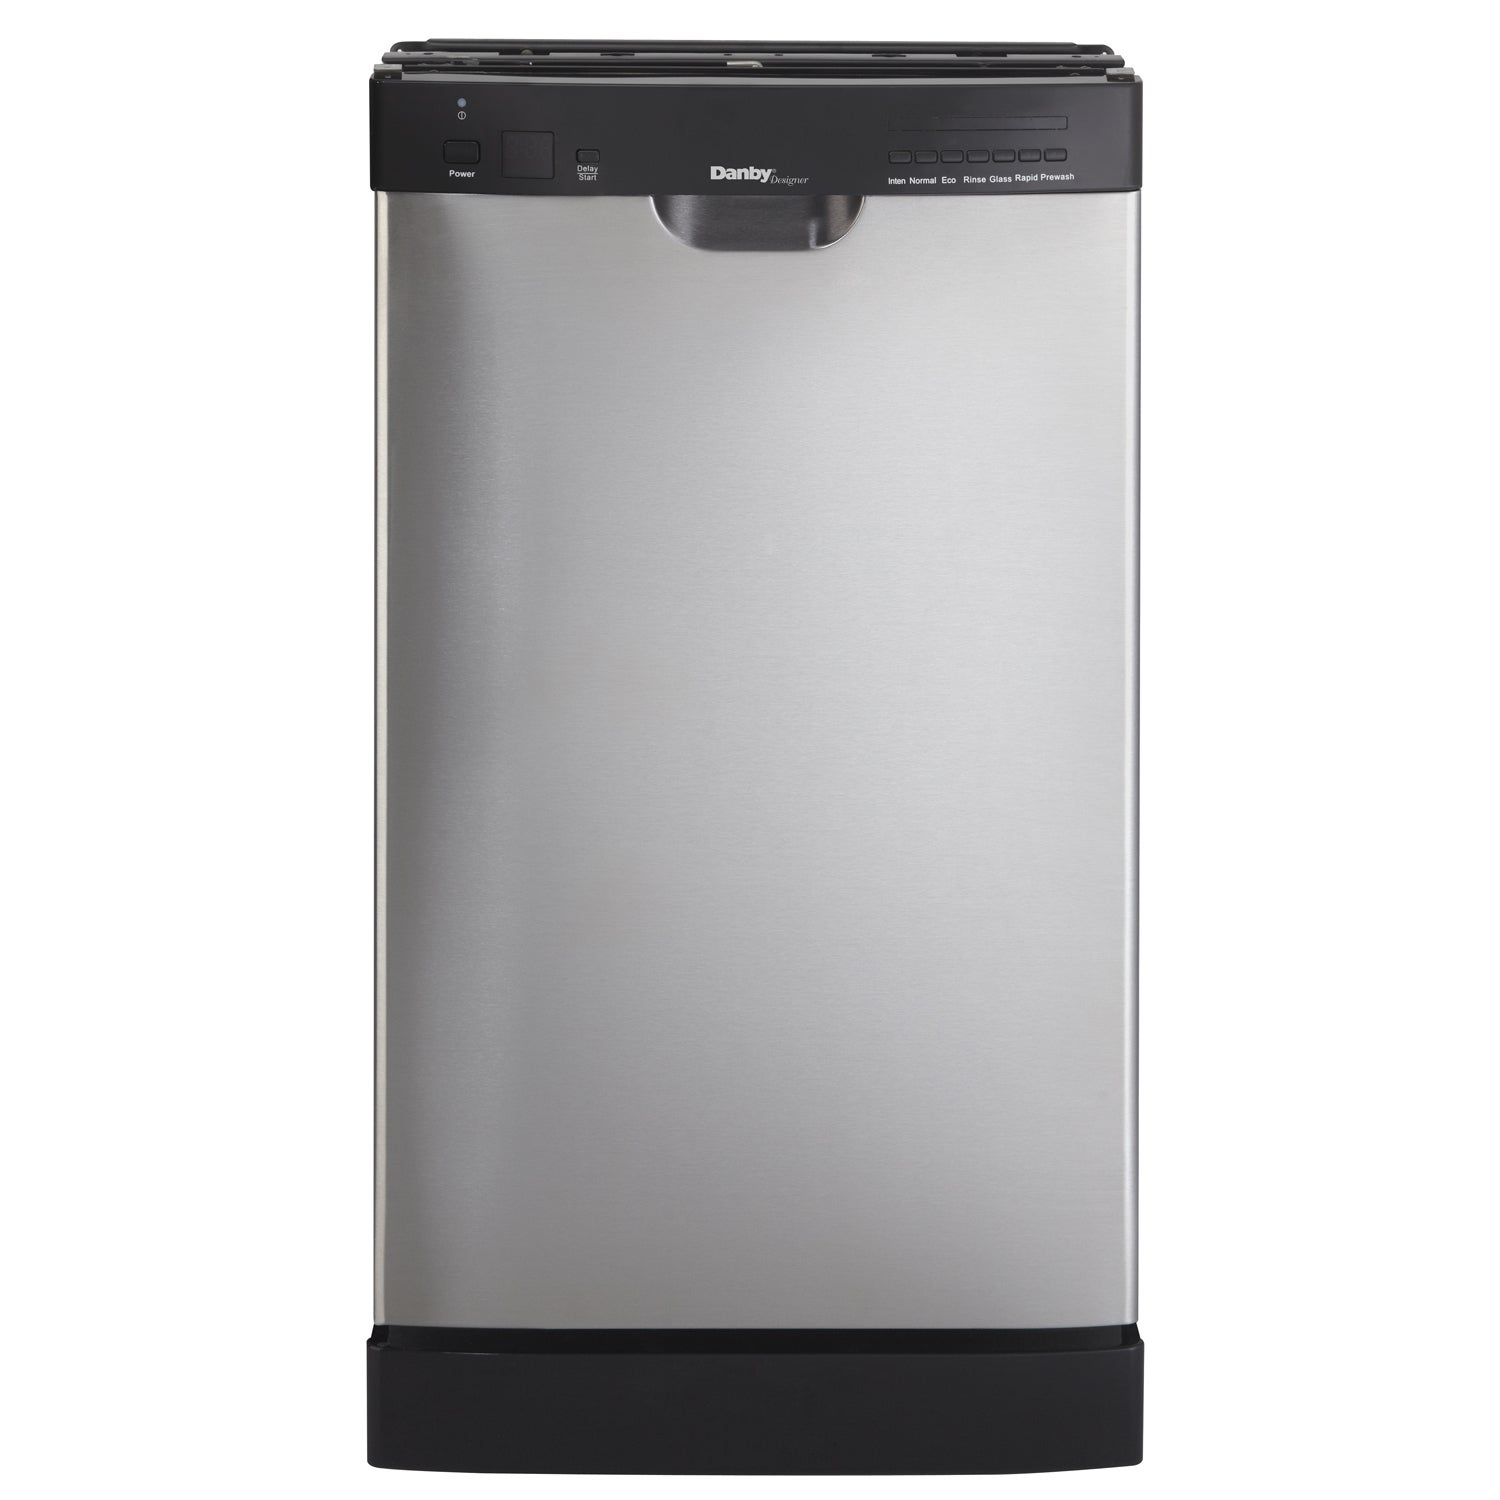 Danby DDW1802EBLS 8 Place Setting Built In Dishwasher Sta...